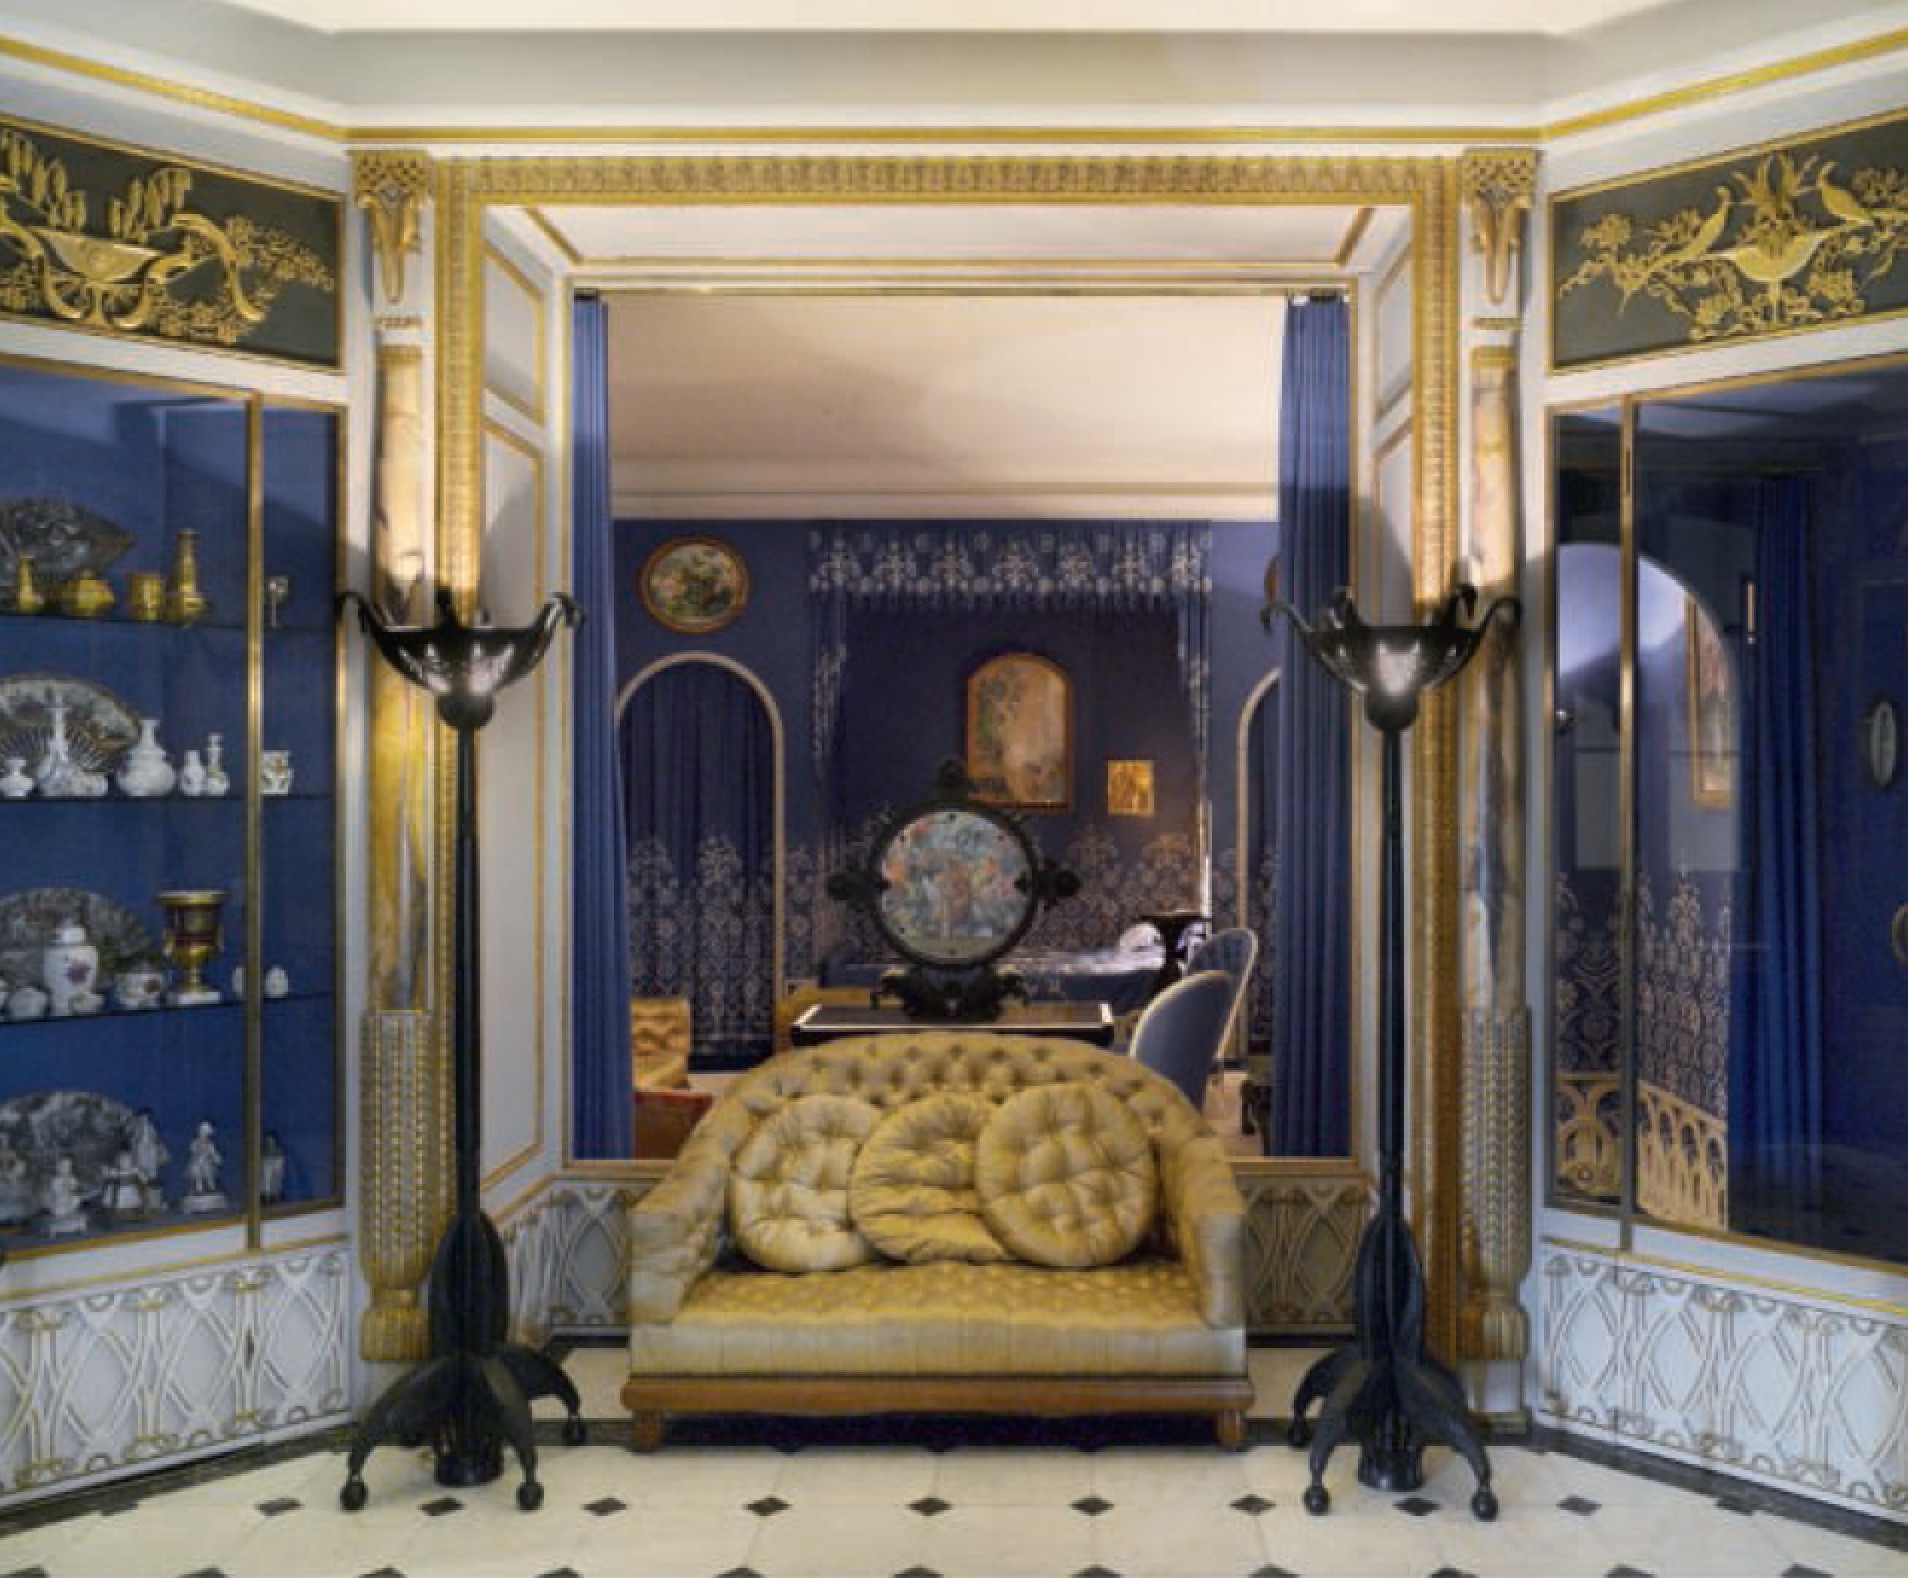 Lanvin Residence, Designed by Armand-Albert Rateau, Paris - as featured in Interiors: the Greatest Rooms of the Century